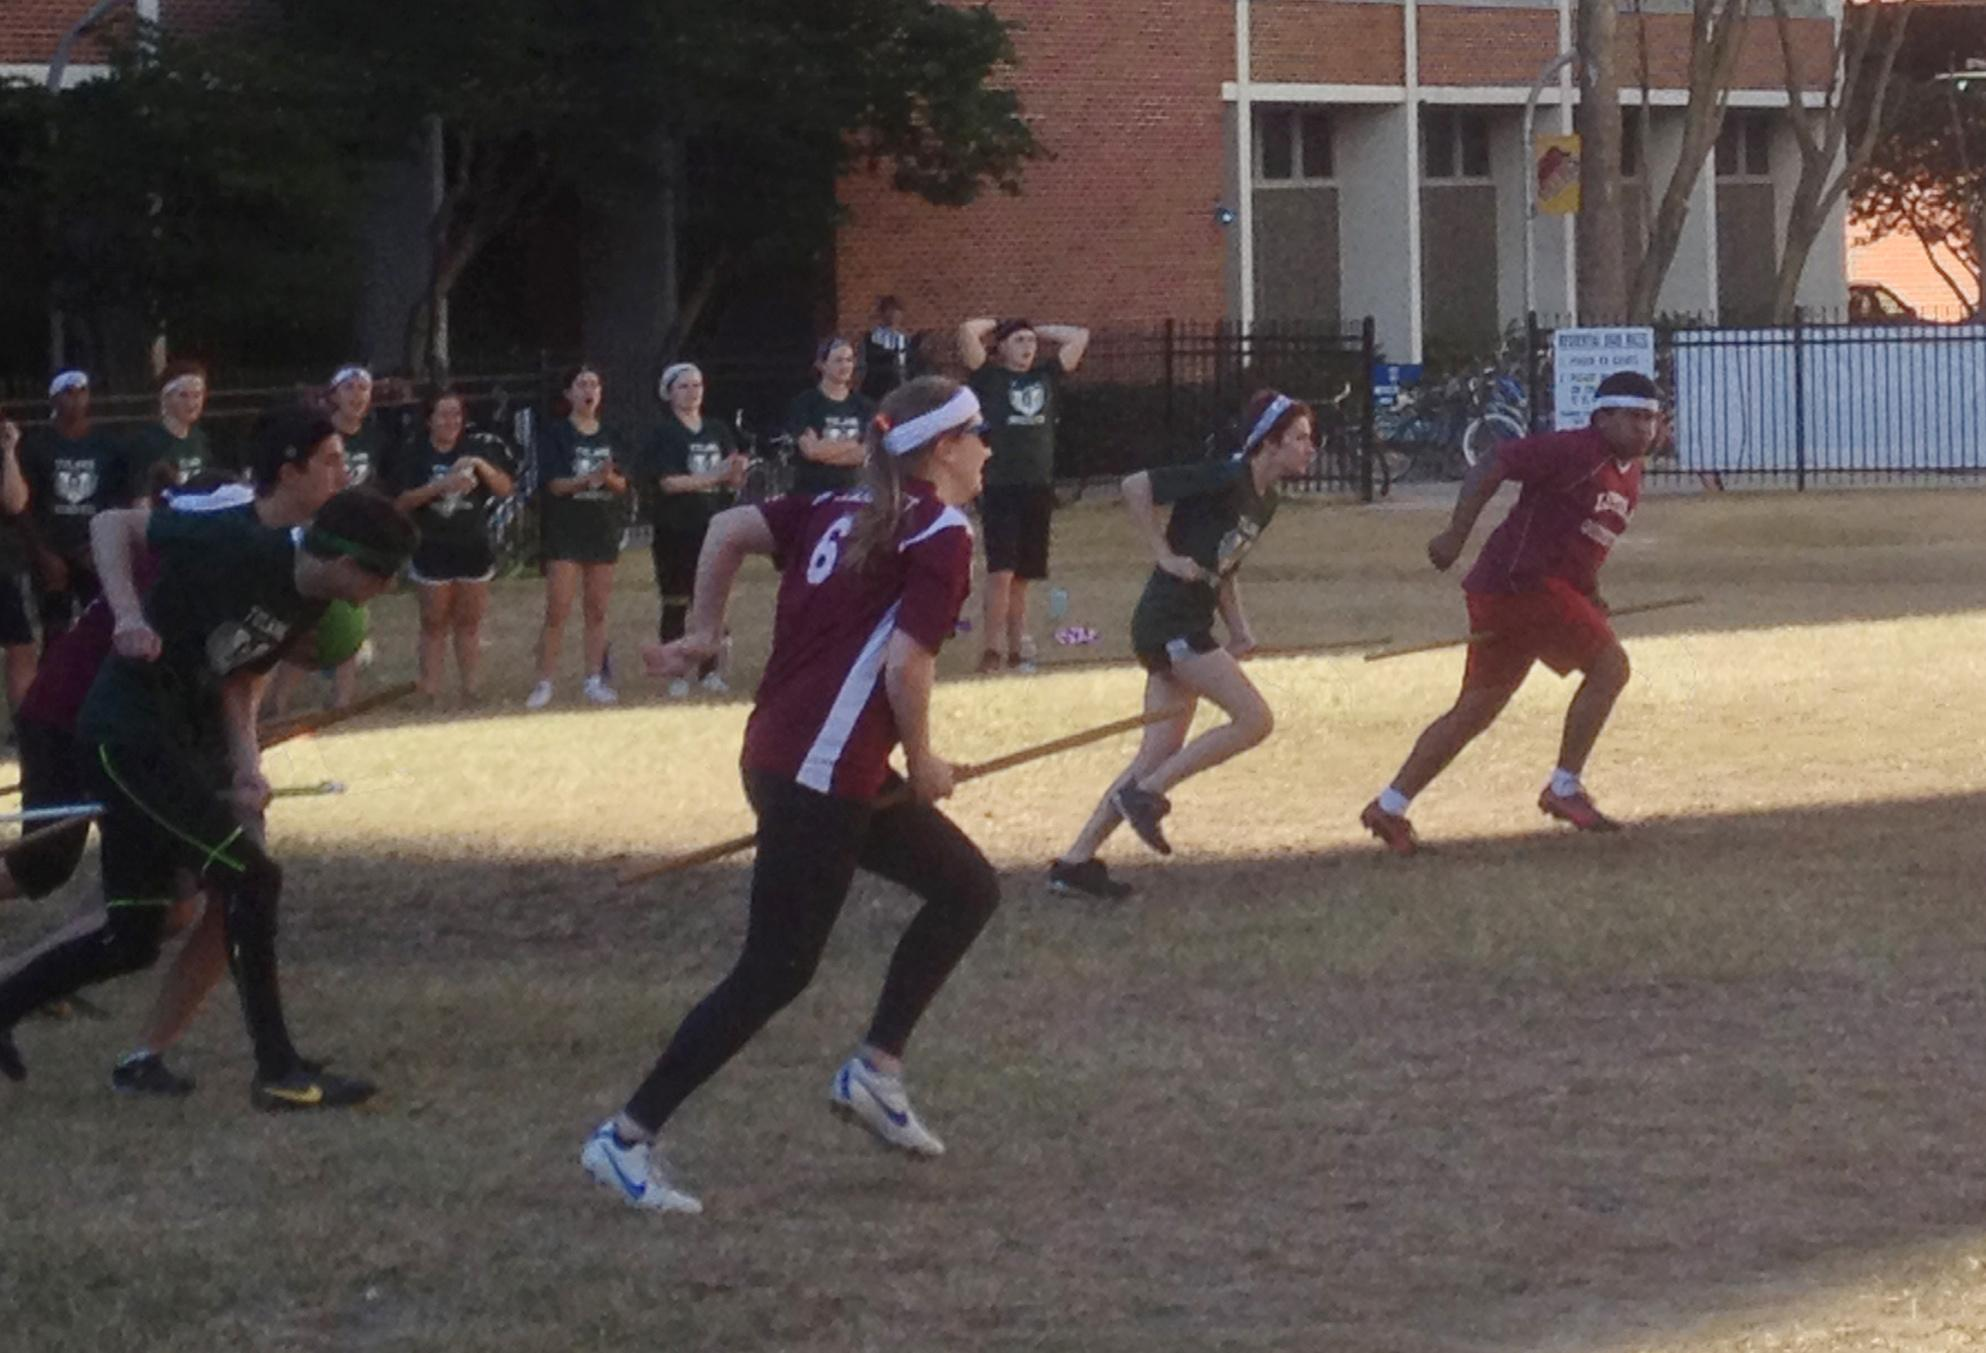 Loyola Quidditch defeated Tulane University in a series of 3 matches on Sunday, Jan. 19. Loyola has been undefeated against Tulane 3 seasons.